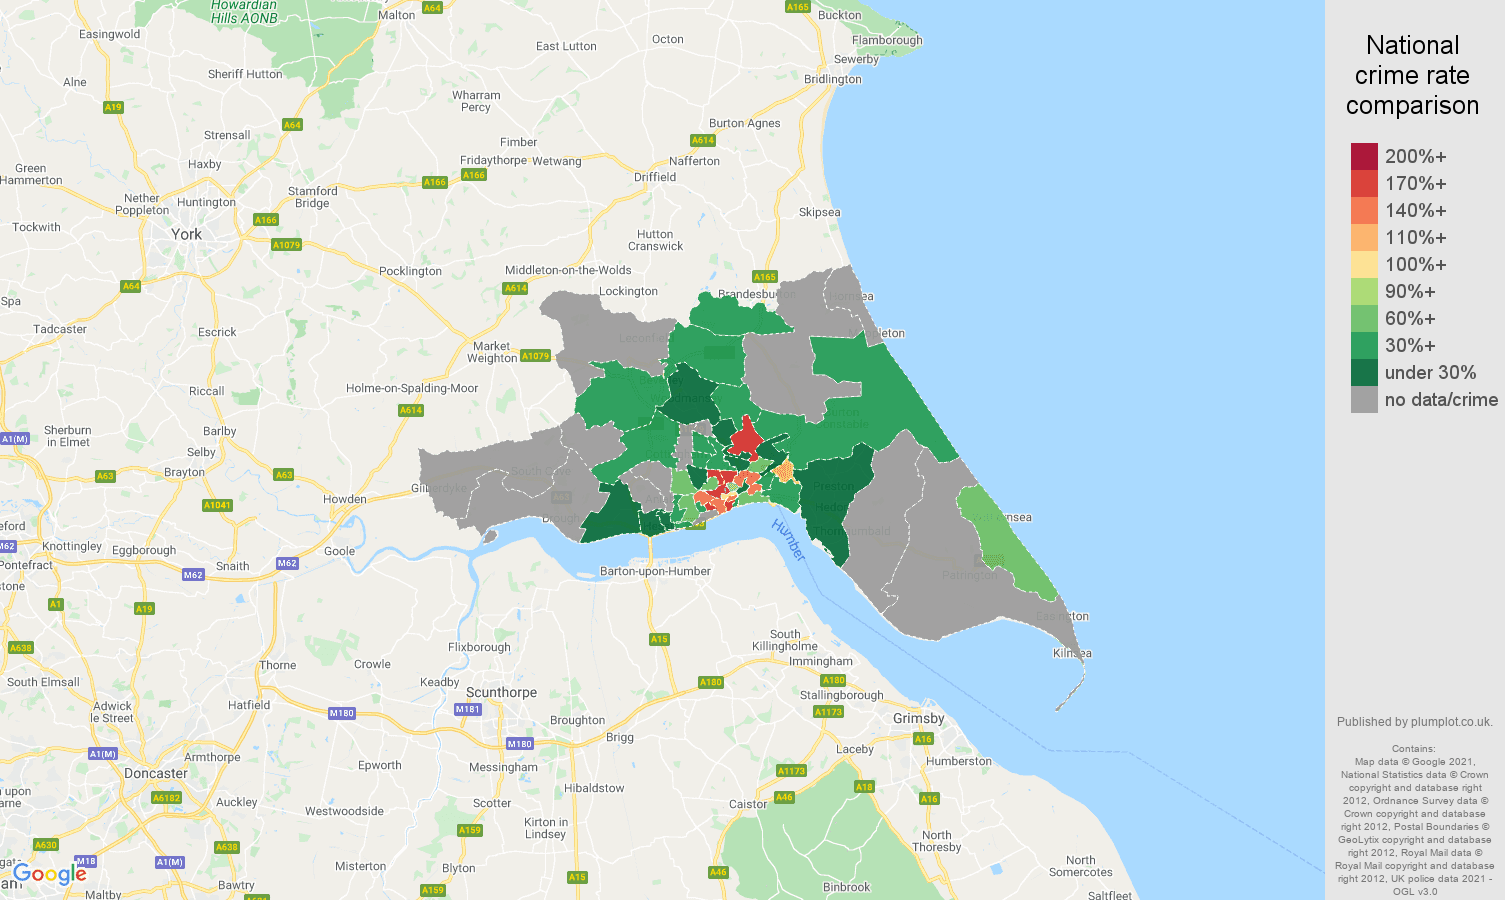 Hull robbery crime rate comparison map